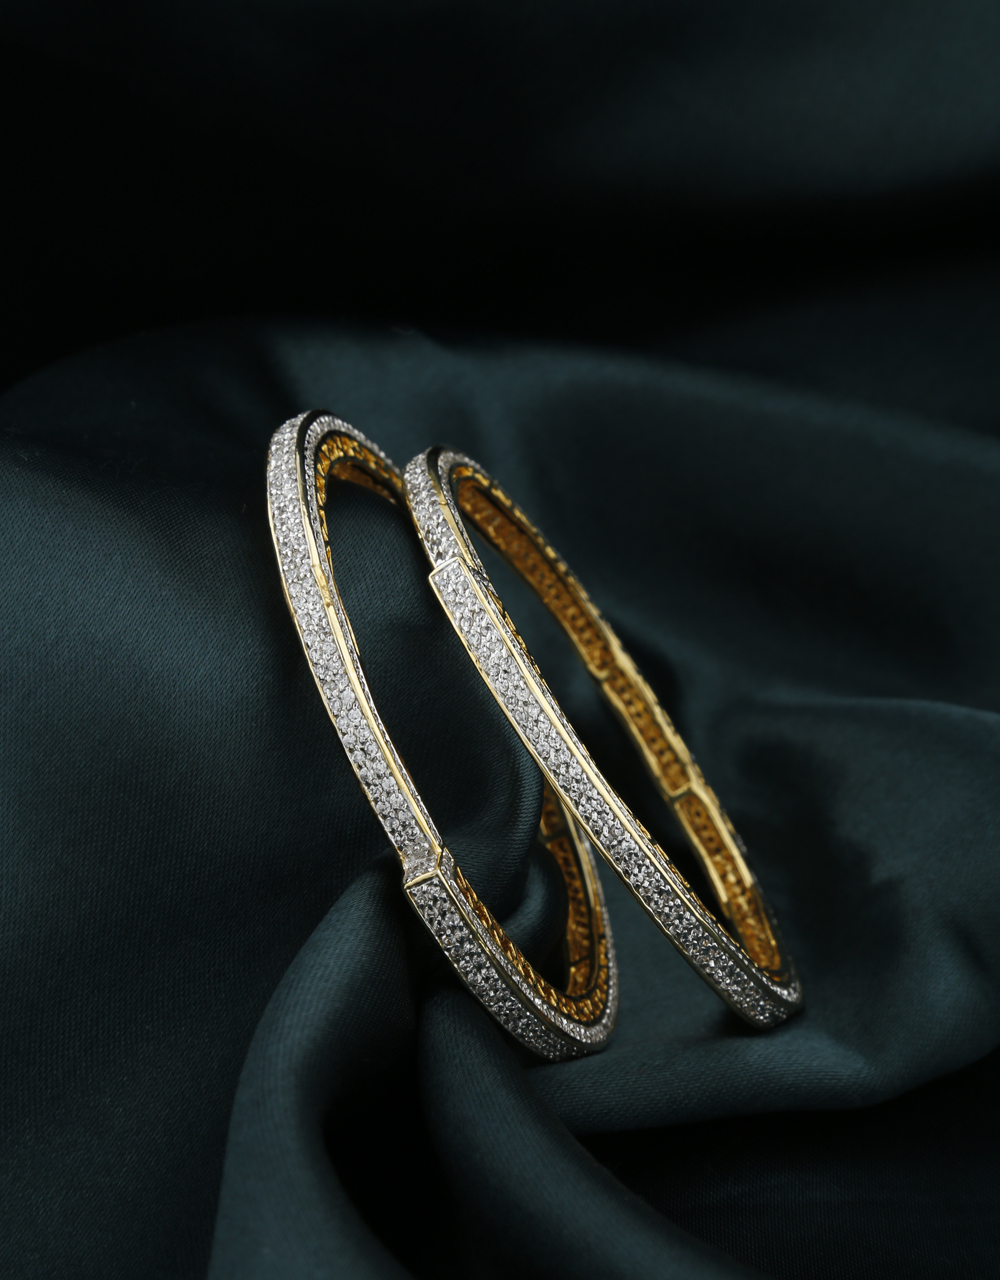 White Stones Studded With Golden Finishing Bangles.